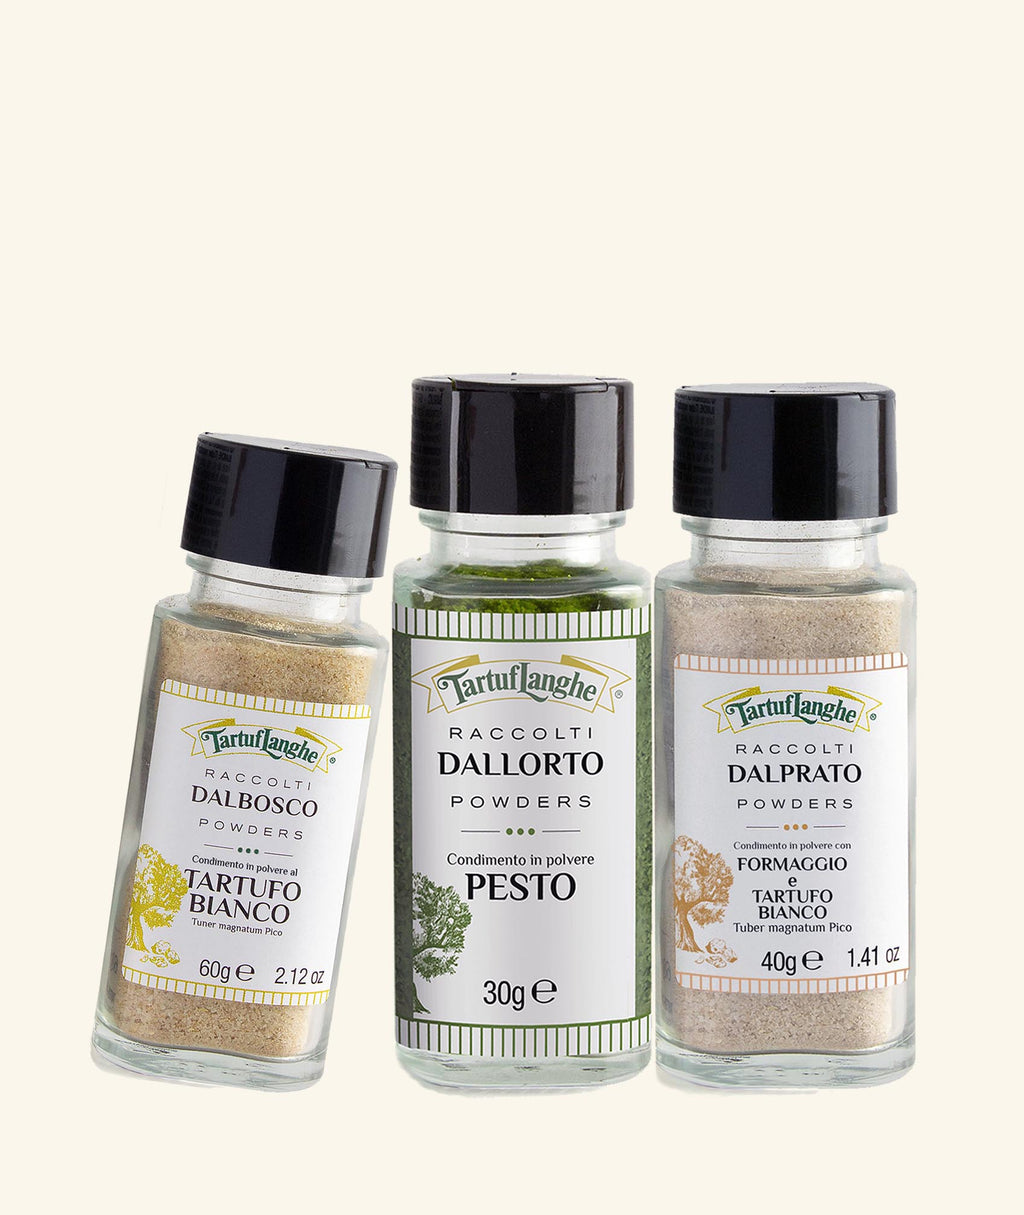 Tartuflanghe's Essential Powders